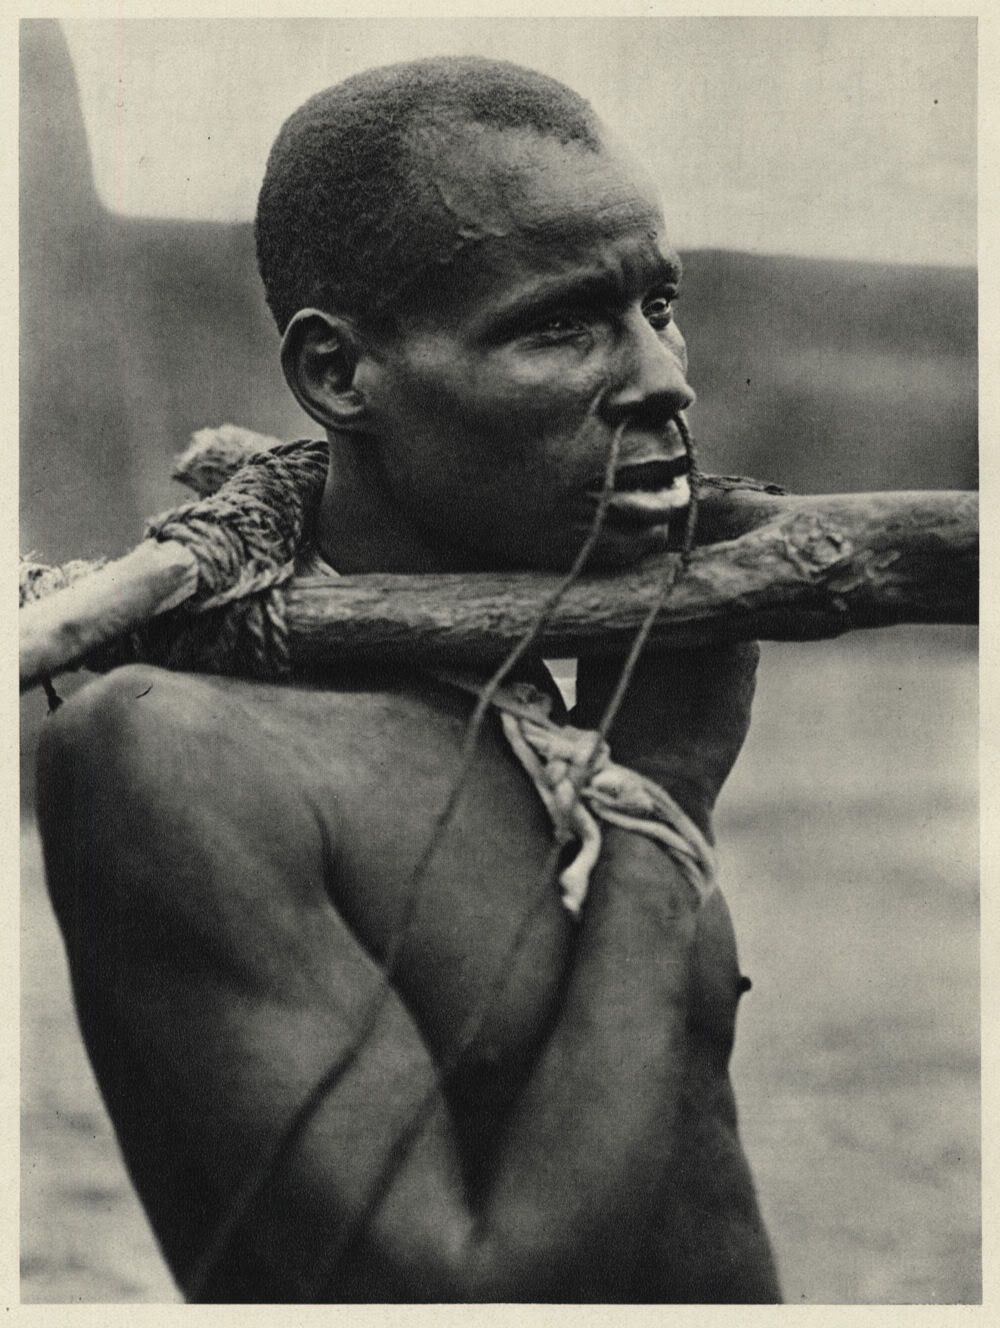 A Kotobo (wood yoked slave) in Chad, 1930.